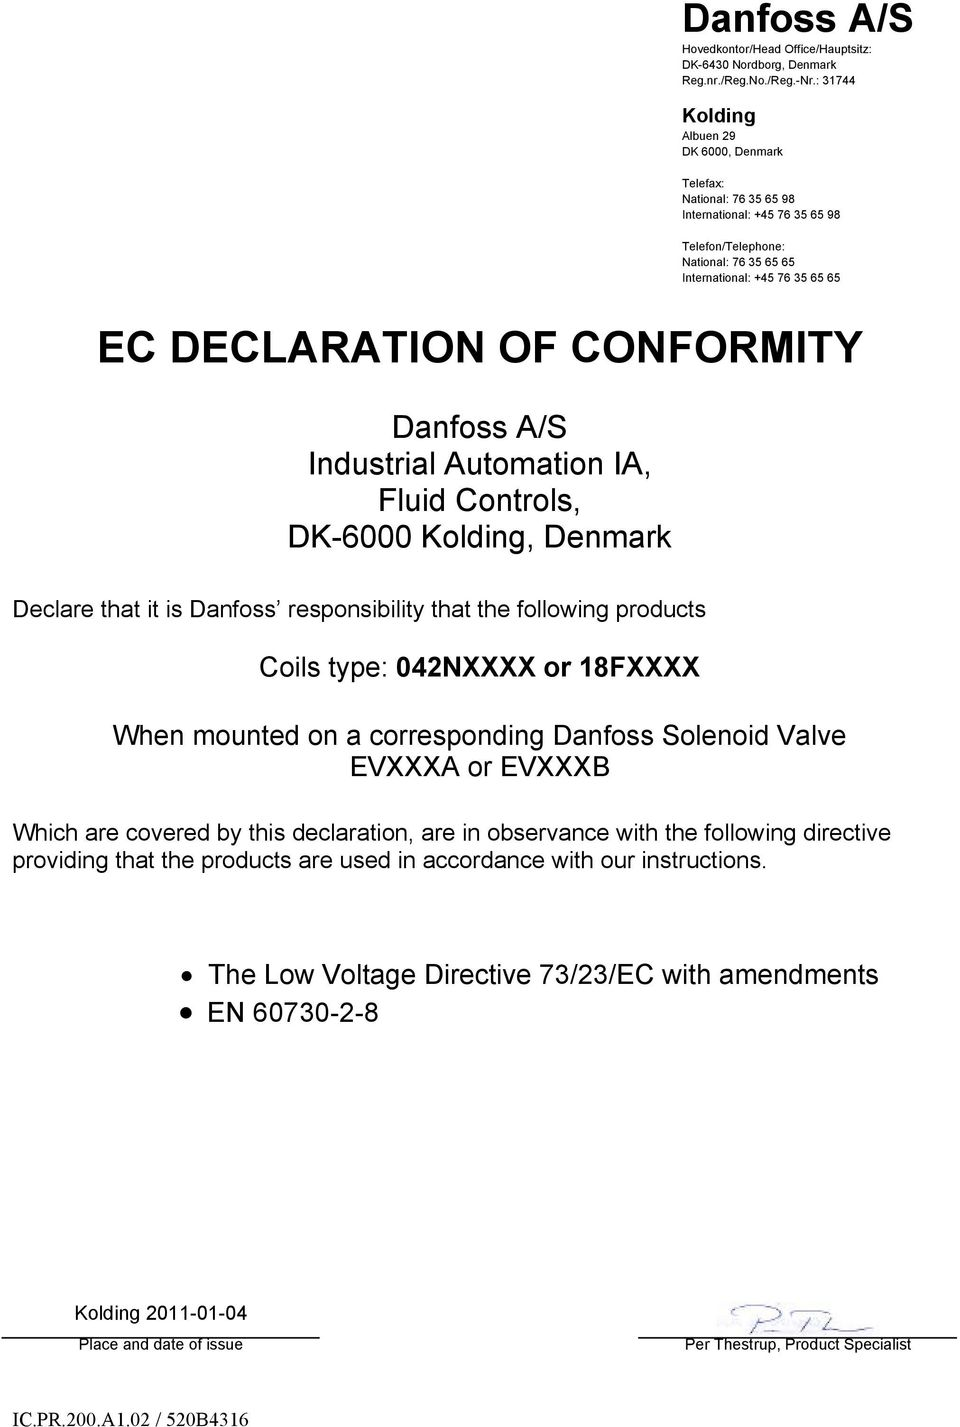 Industrial Automation IA, Fluid Controls, DK-6000, Denmark Declare that it is Danfoss responsibility that the following products Coils type: 042NXXXX or 18FXXXX When mounted on a corresponding